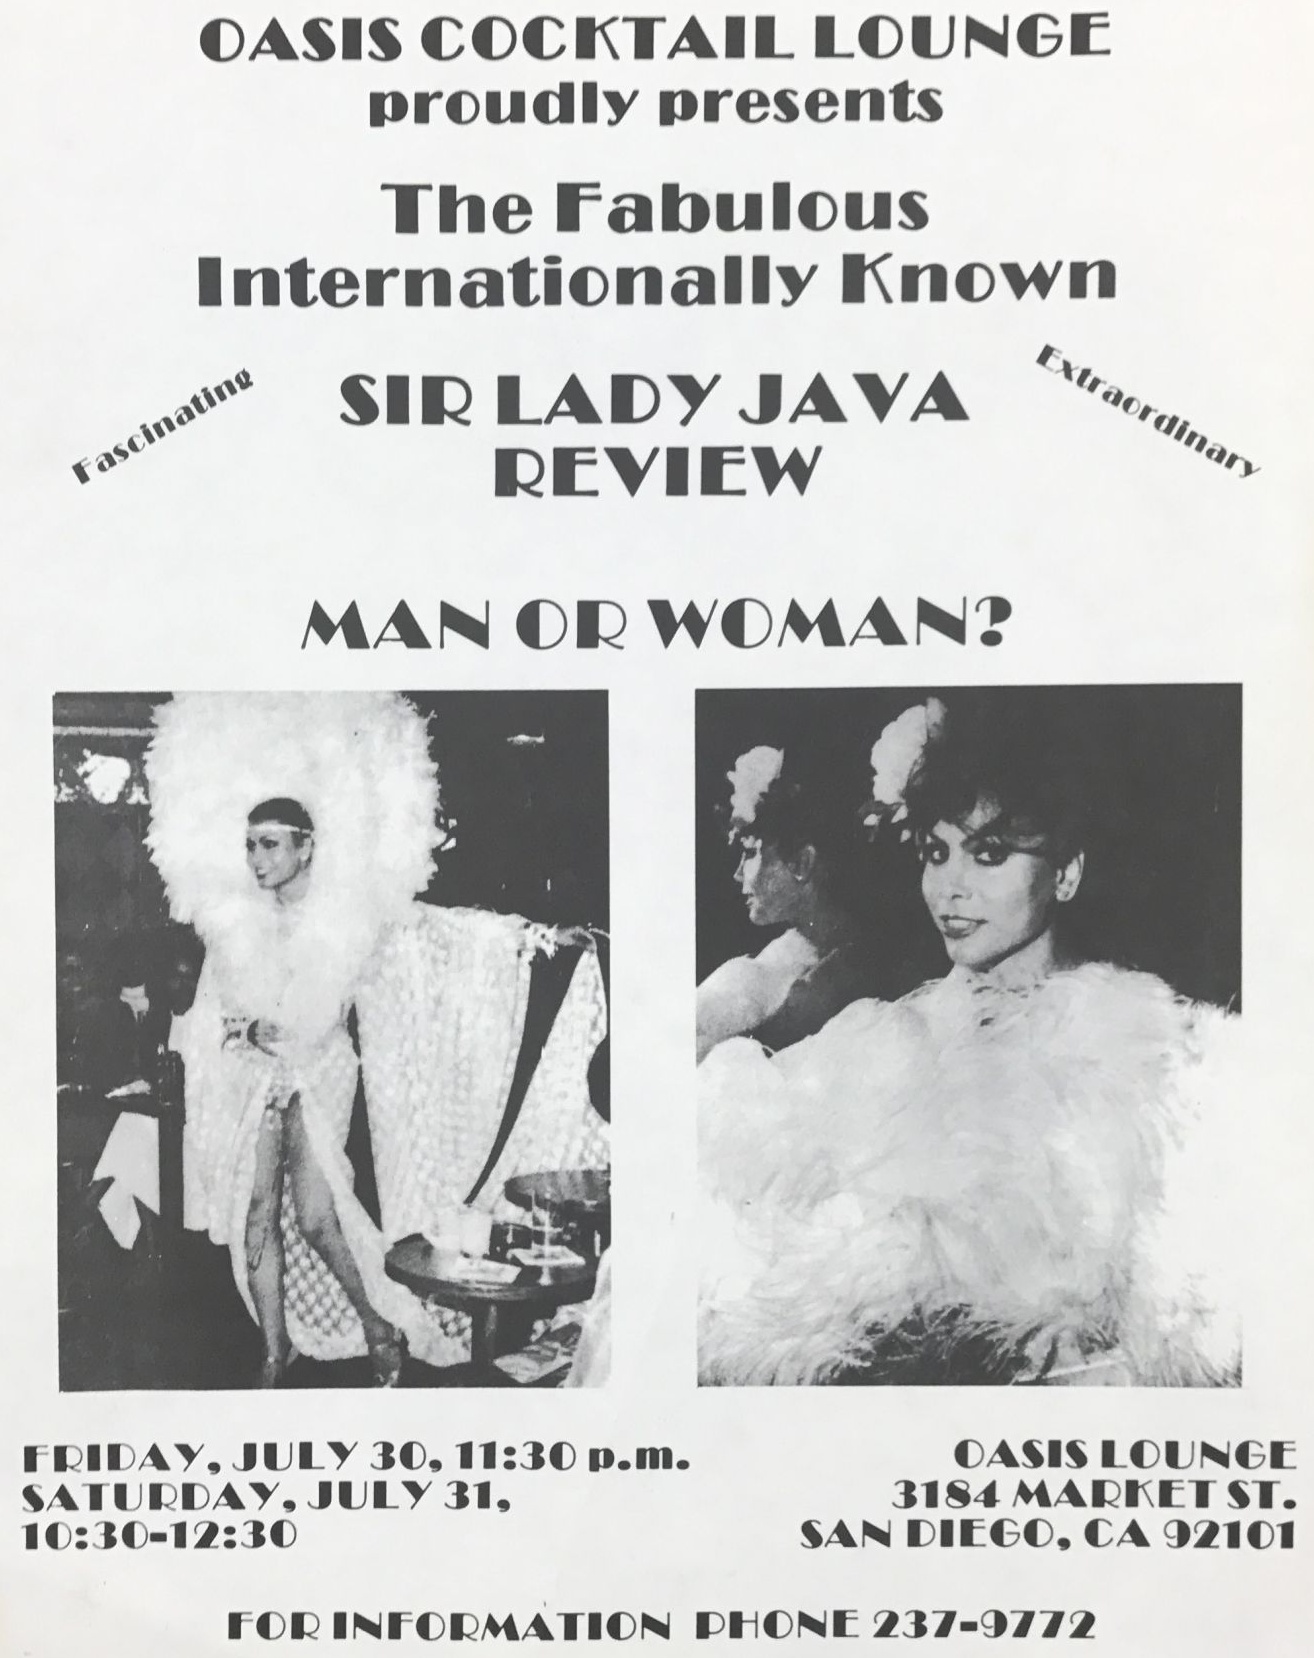 Sir Lady Java at San Diego Oasis Lounge, July 31, 1971